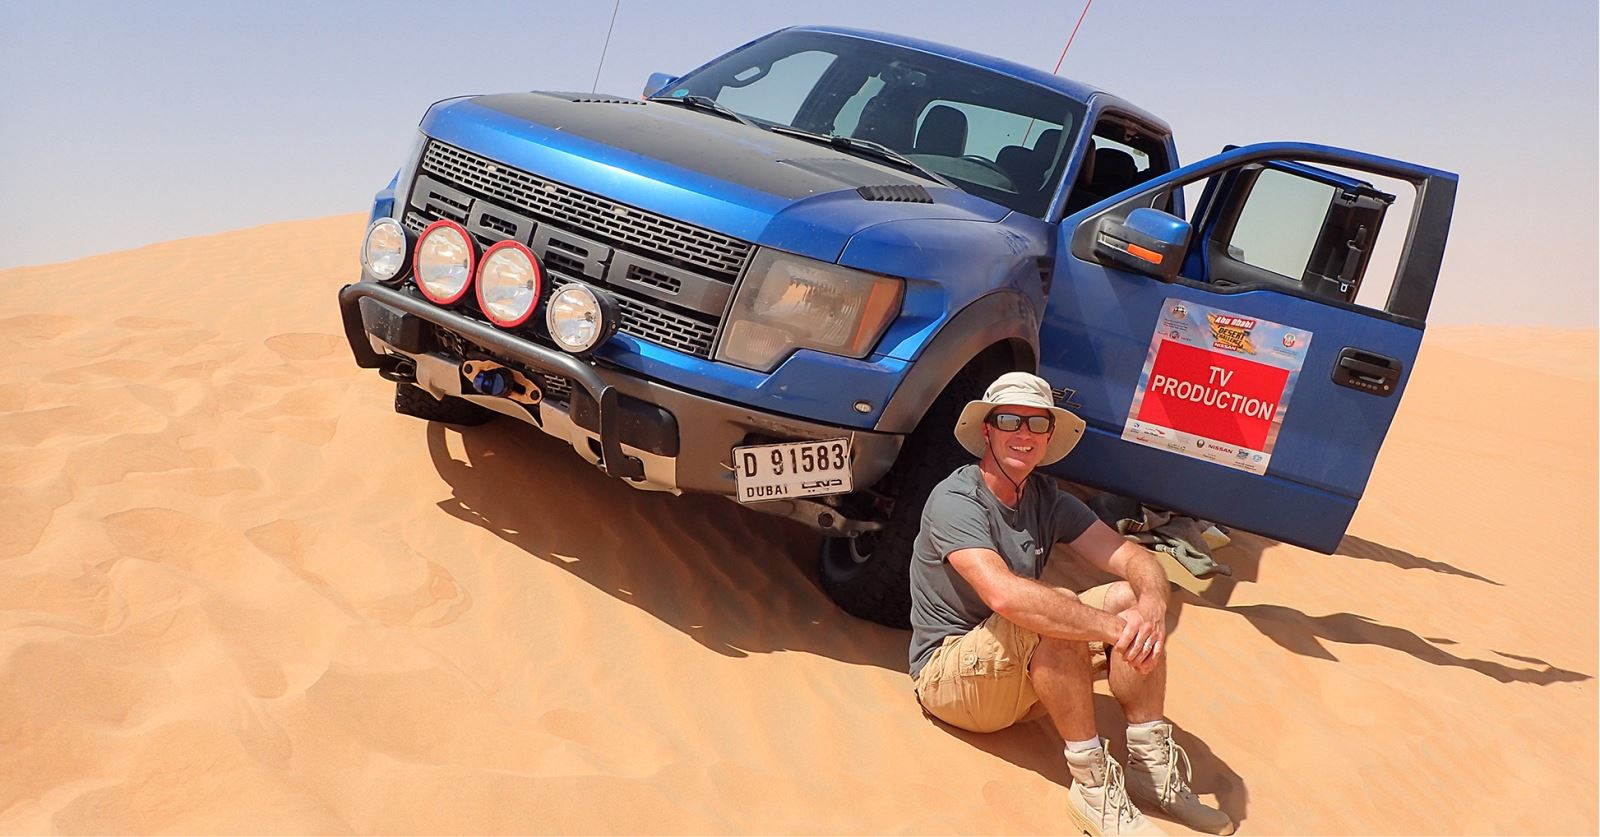 Welcome to new GTC member Damian Barker - seen here working on the Abu Dhabi Desert Challenge